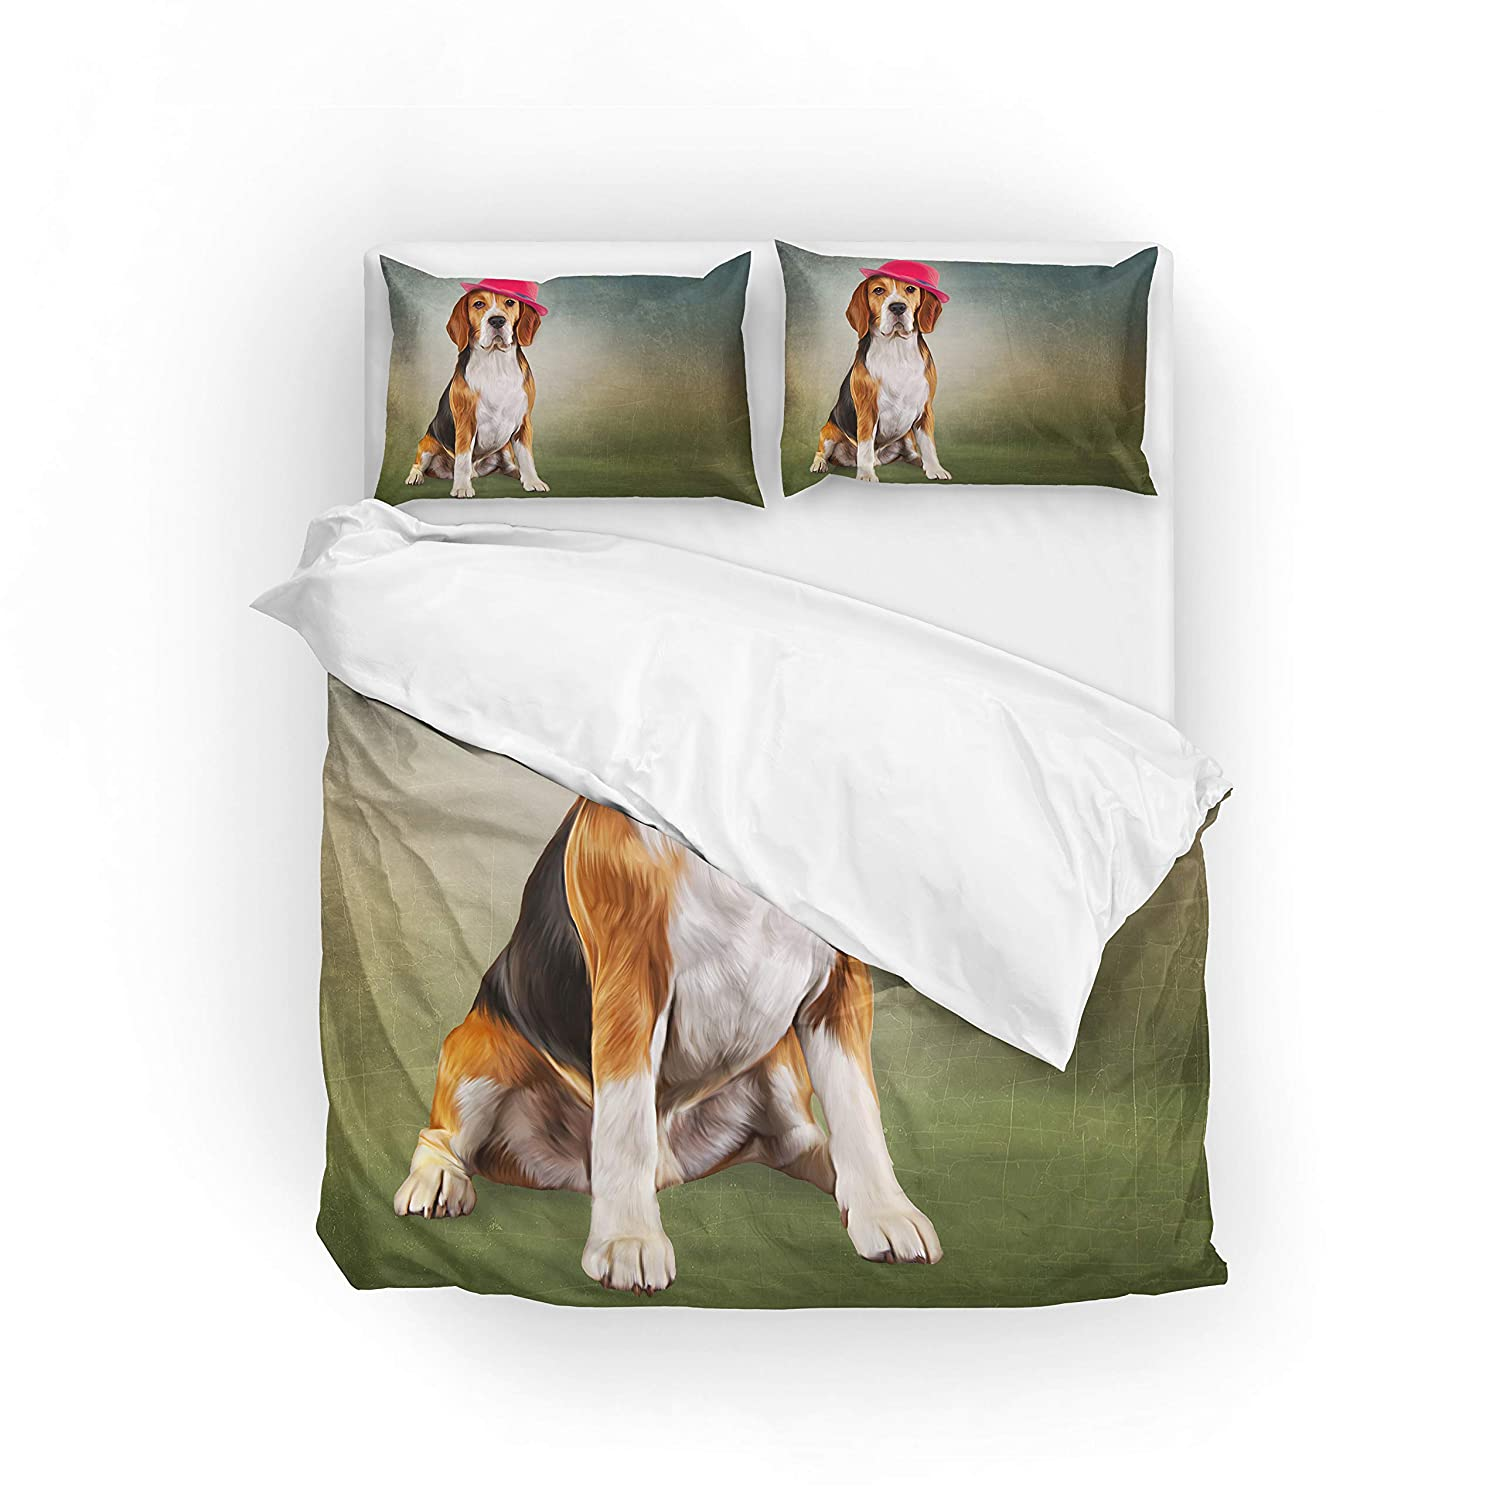 My Daily Funny Beagle Dog Duvet Cover Set Polyester Quilt Bedding Set Twin/Single